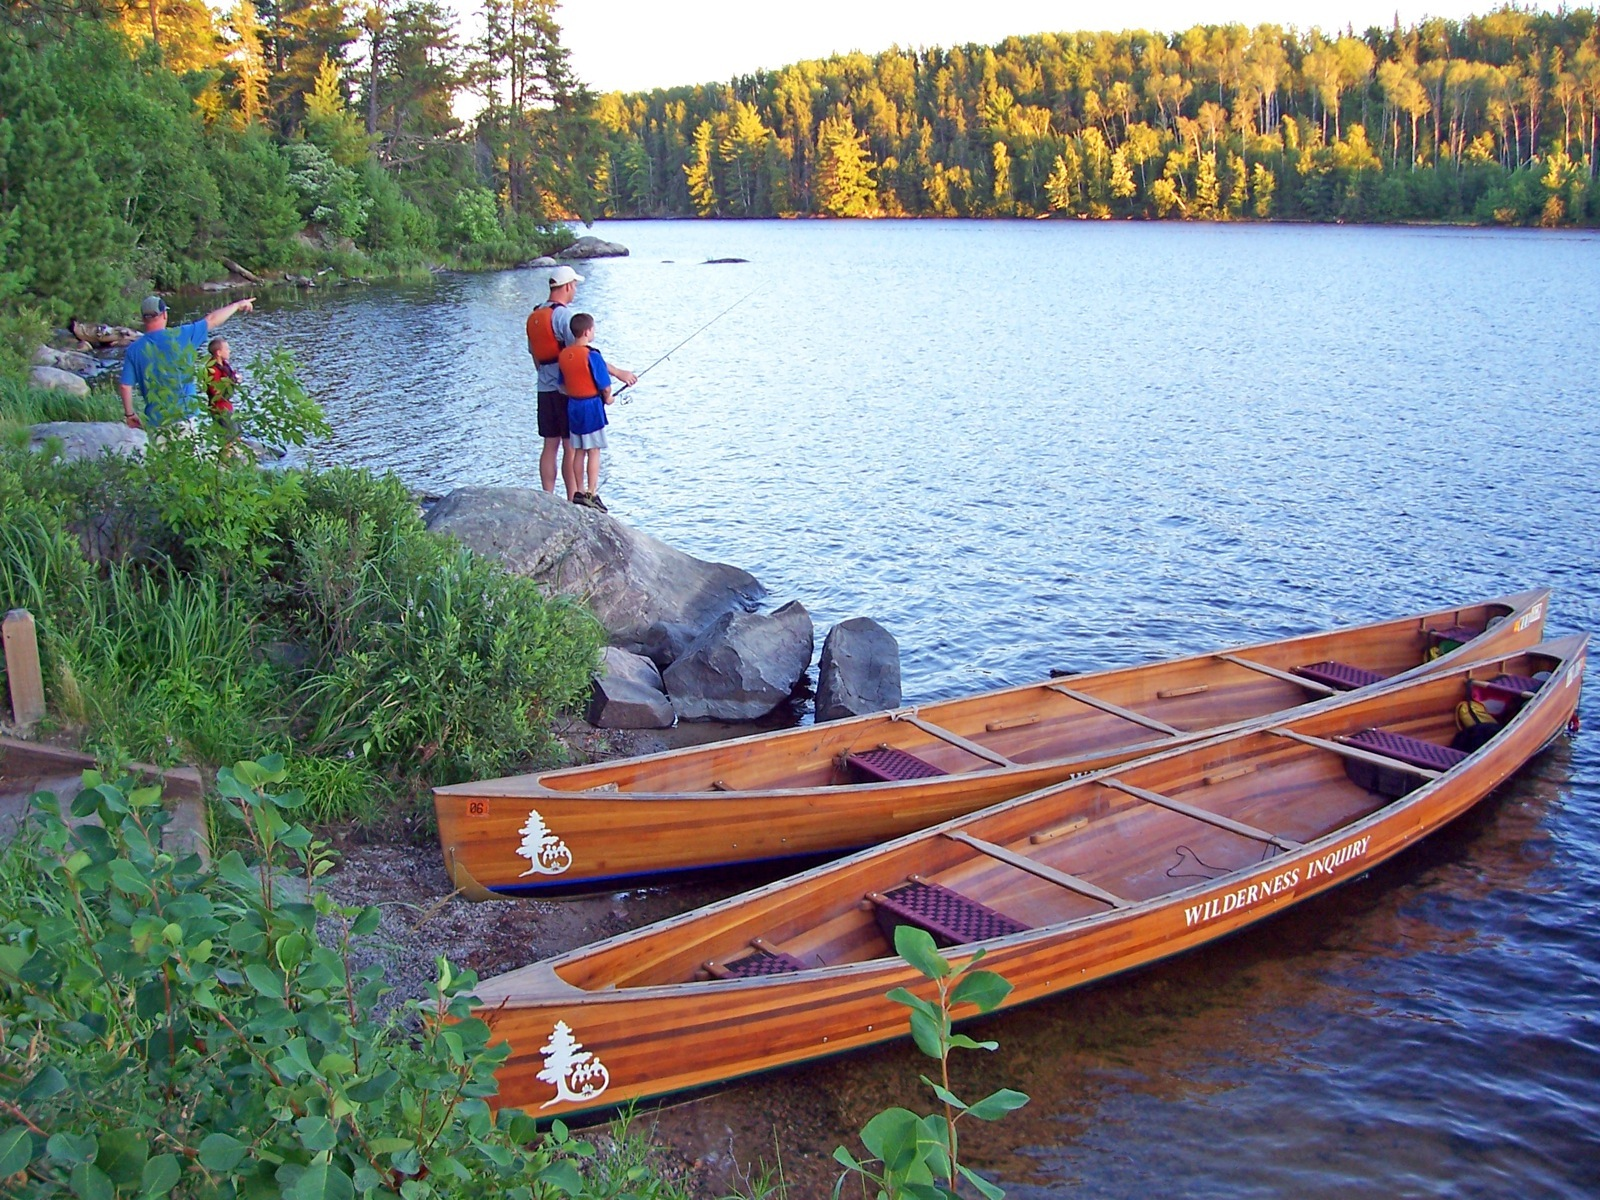 A father and son fish next to two canoes on a rocky shore in Voyageurs National Park.